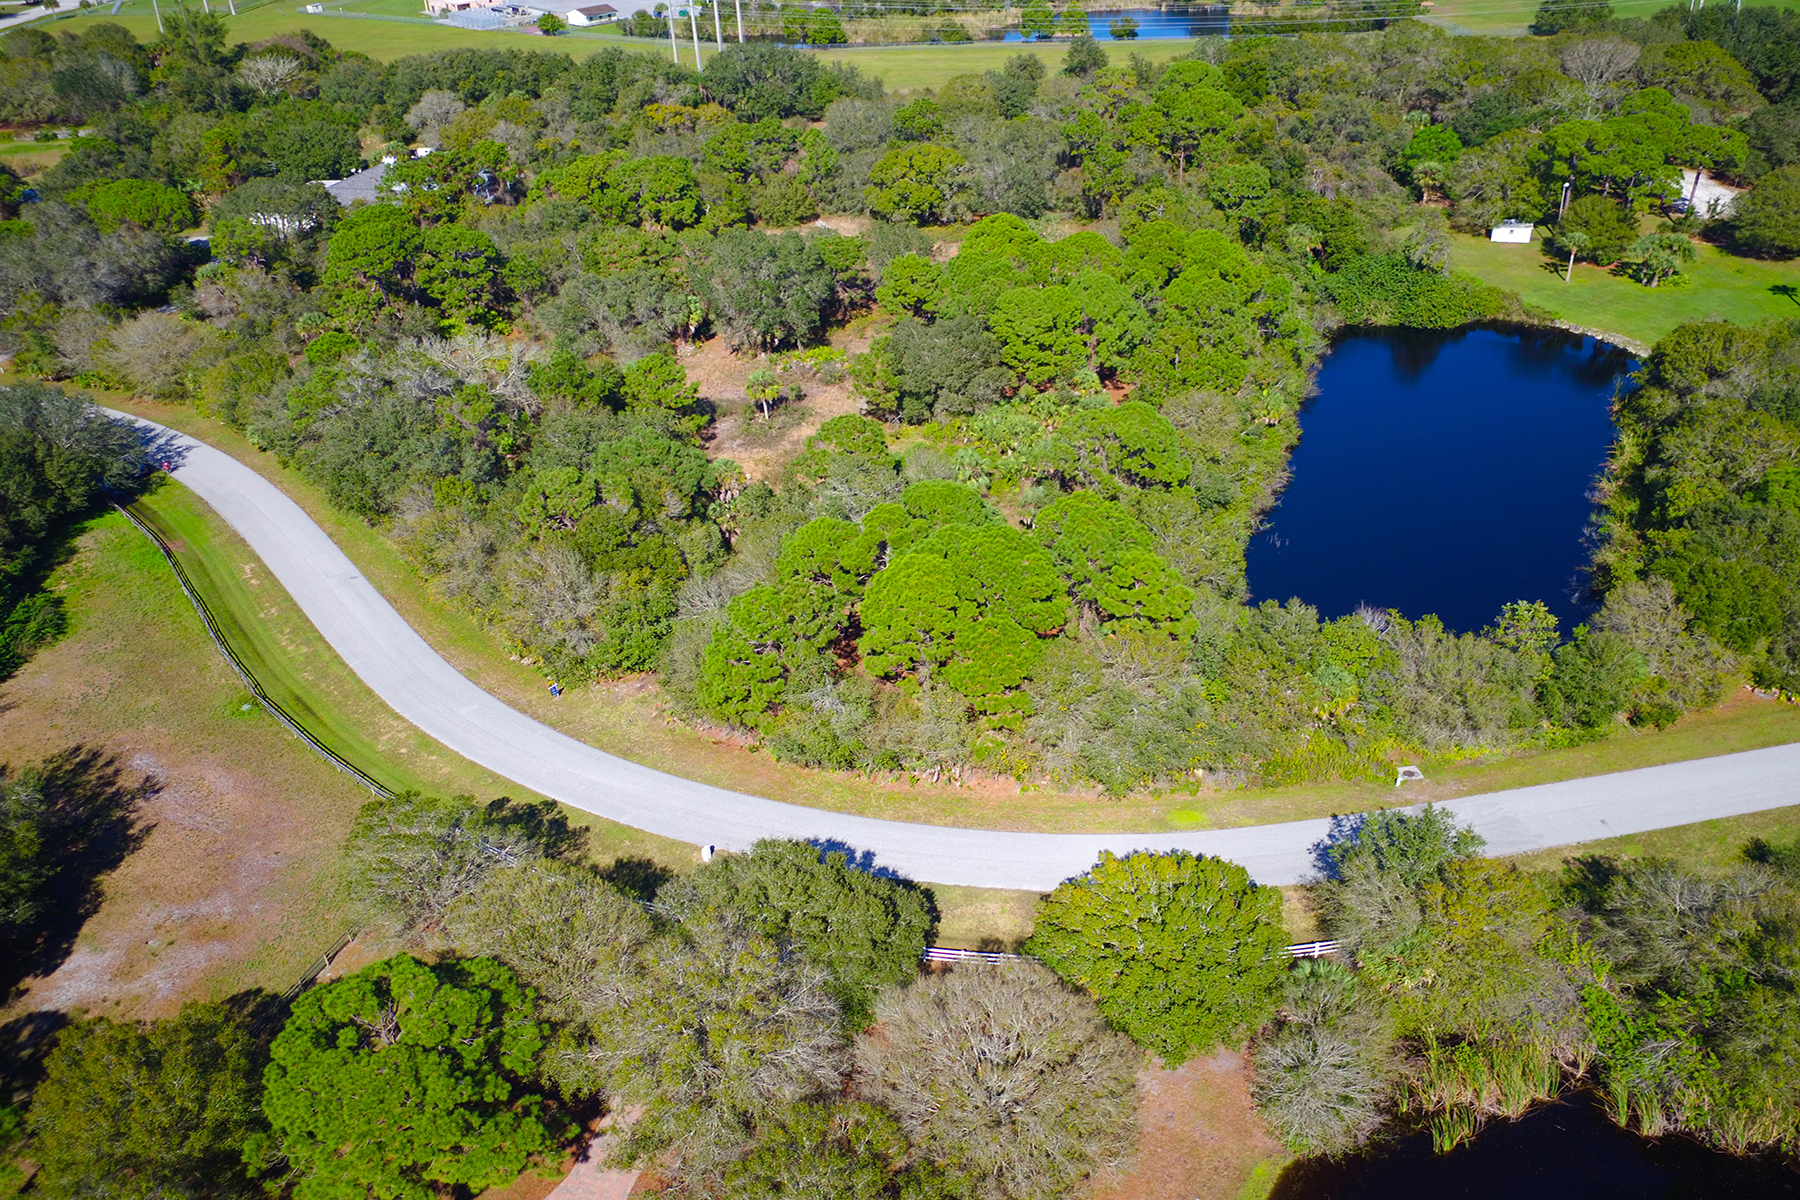 Land for Sale at SORRENTO RANCHES Sorrento Ranch Dr 2 Nokomis, Florida, 34275 United States